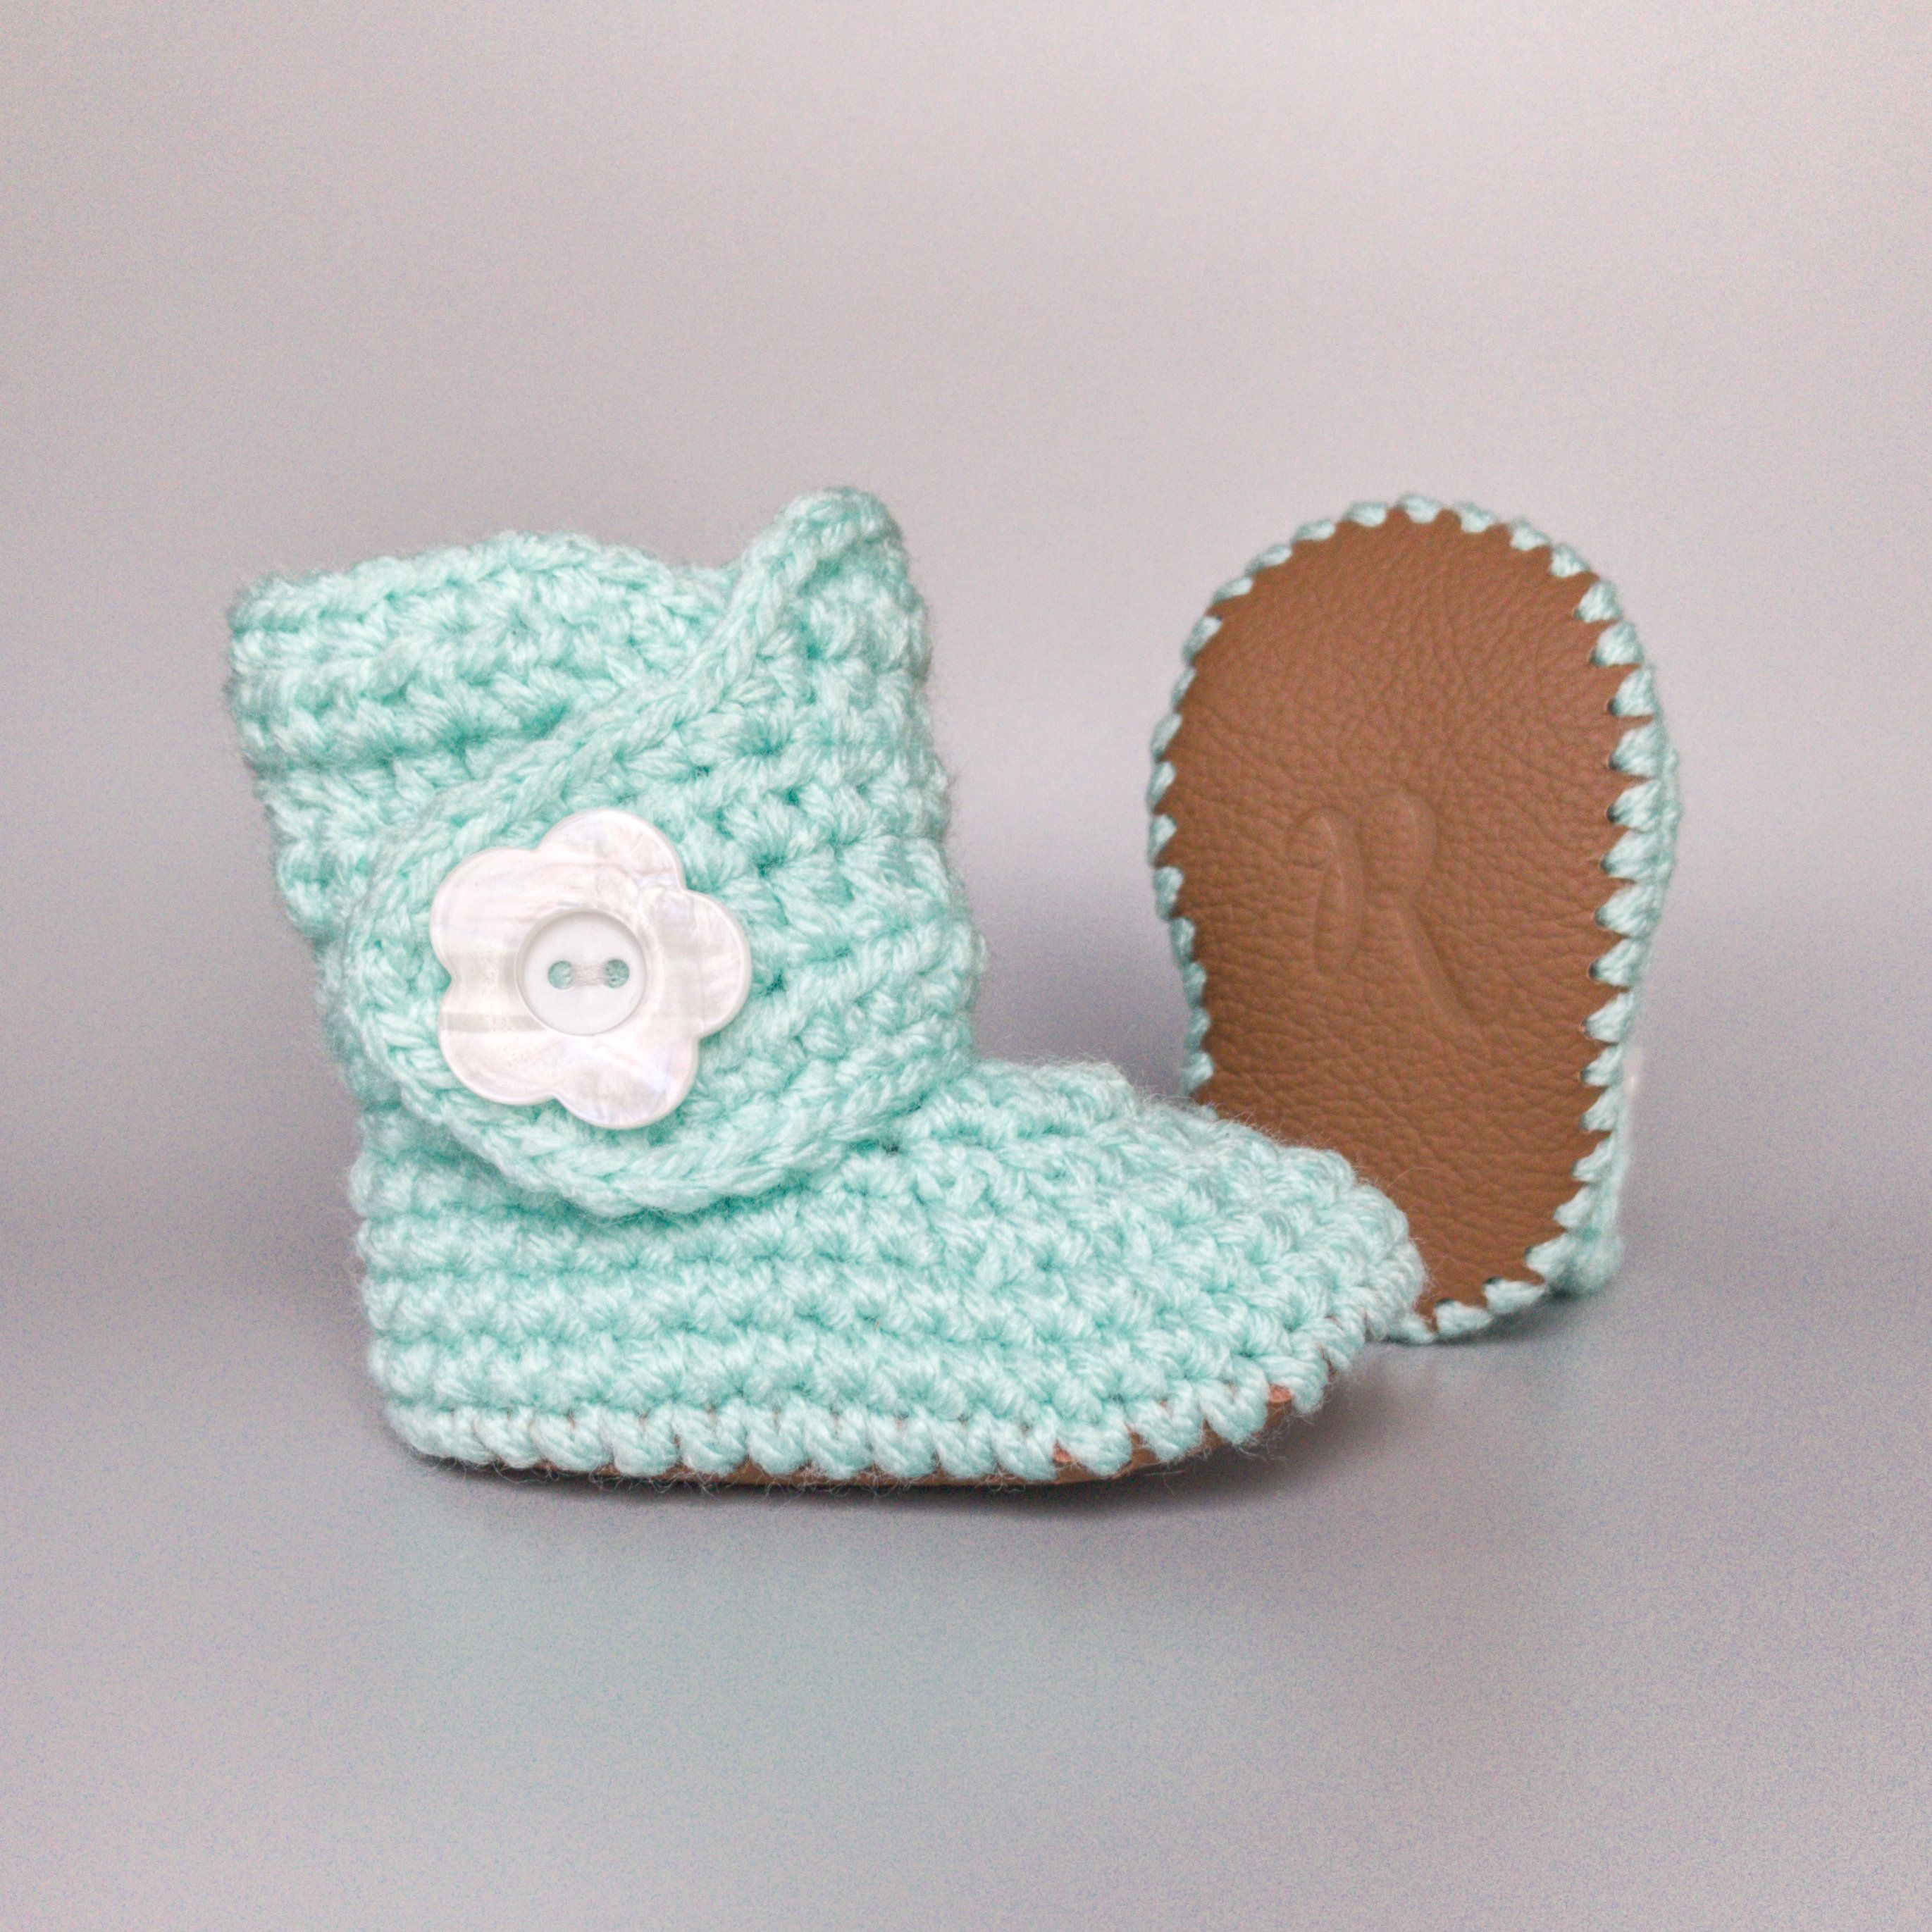 d12e5a24b3f3d Mint Baby Shoes, Knit Baby Boots, Baby Girl Booties, Crochet Baby ...